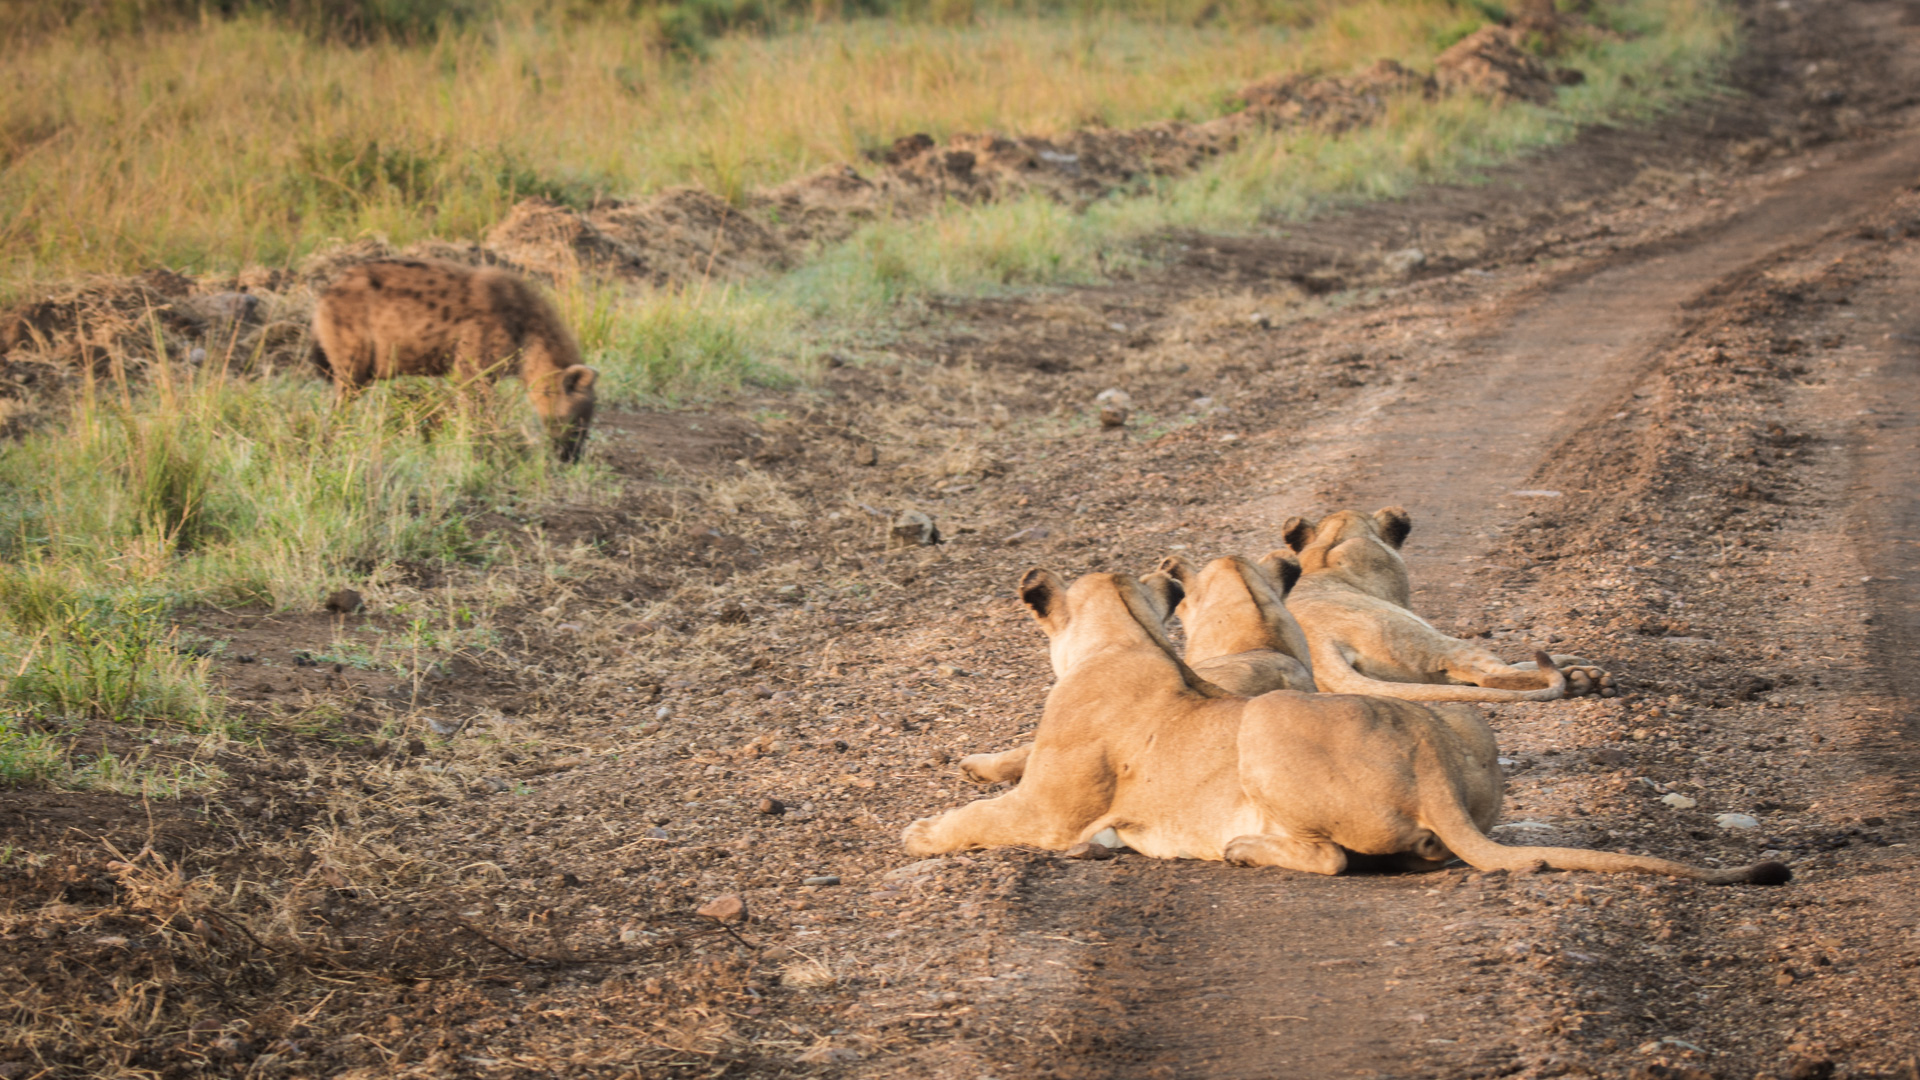 Hyena with lionesses